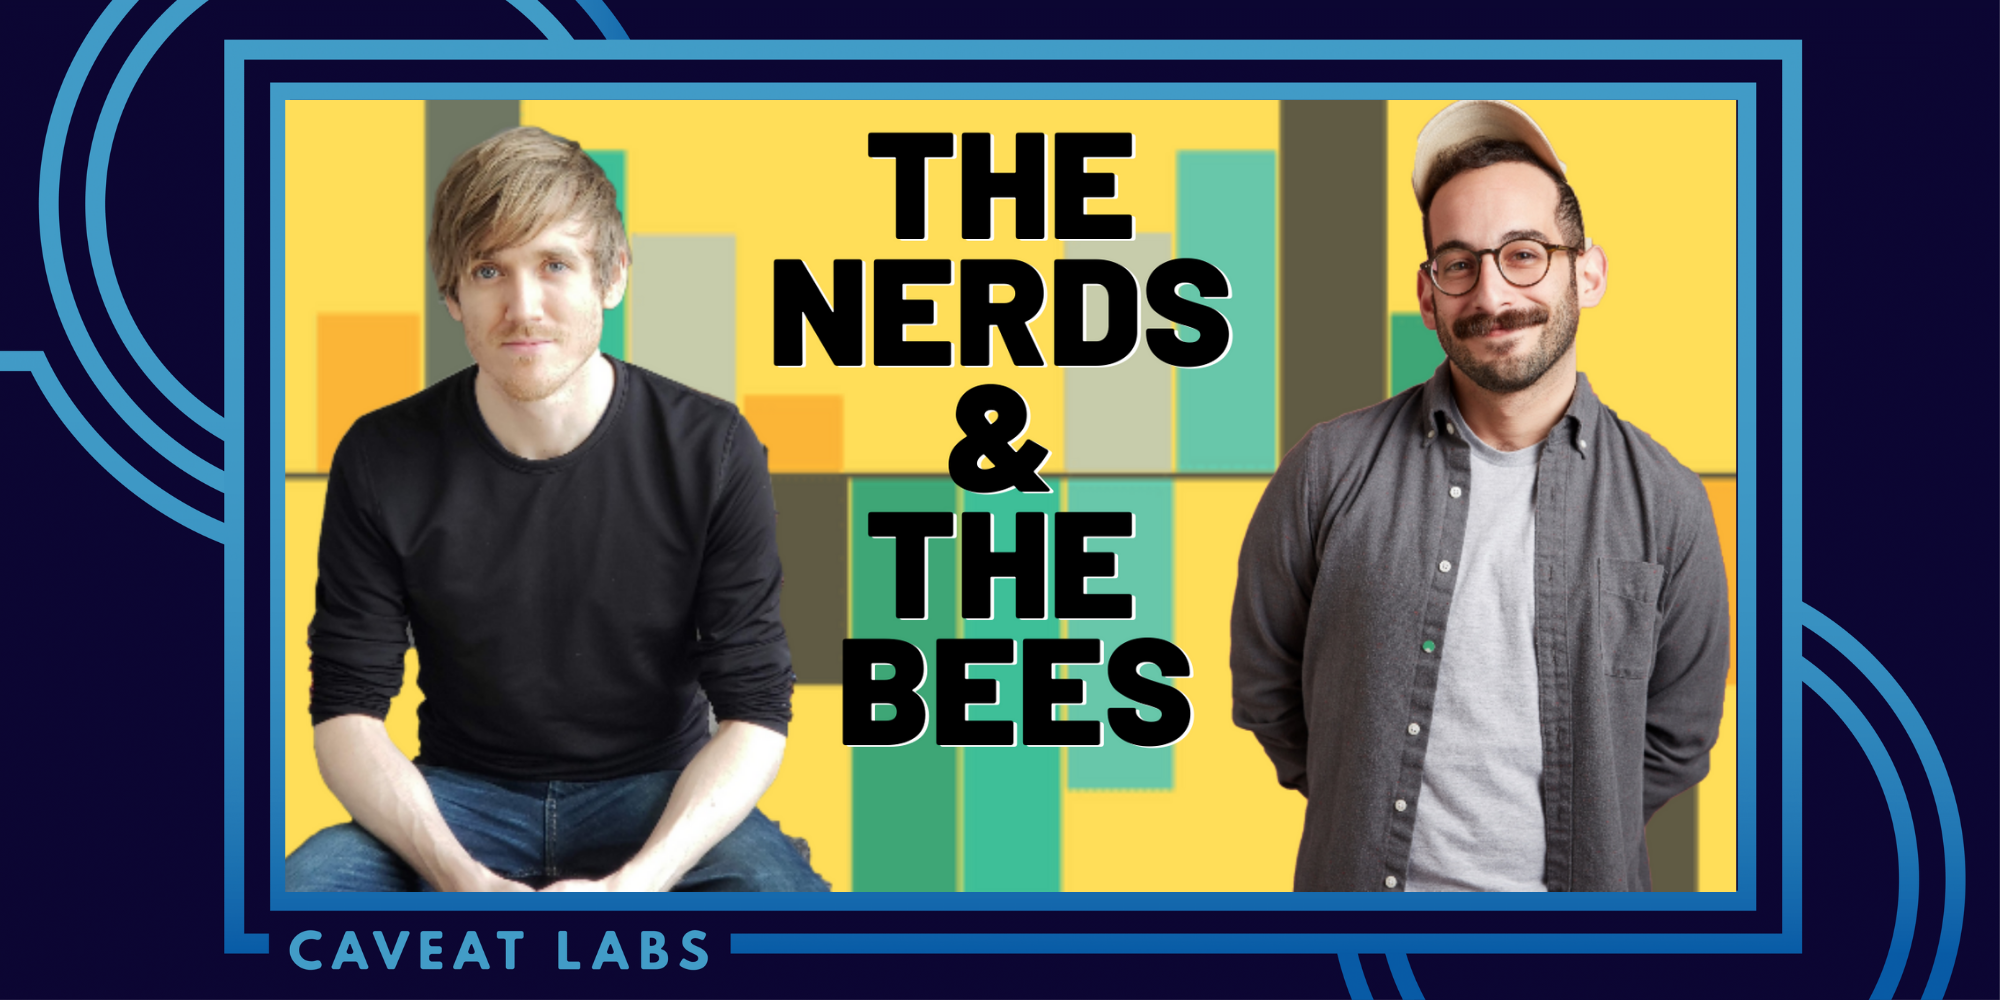 66630 image - The Nerds and the Bees: the data breakdown and comedy overview your dating live needs